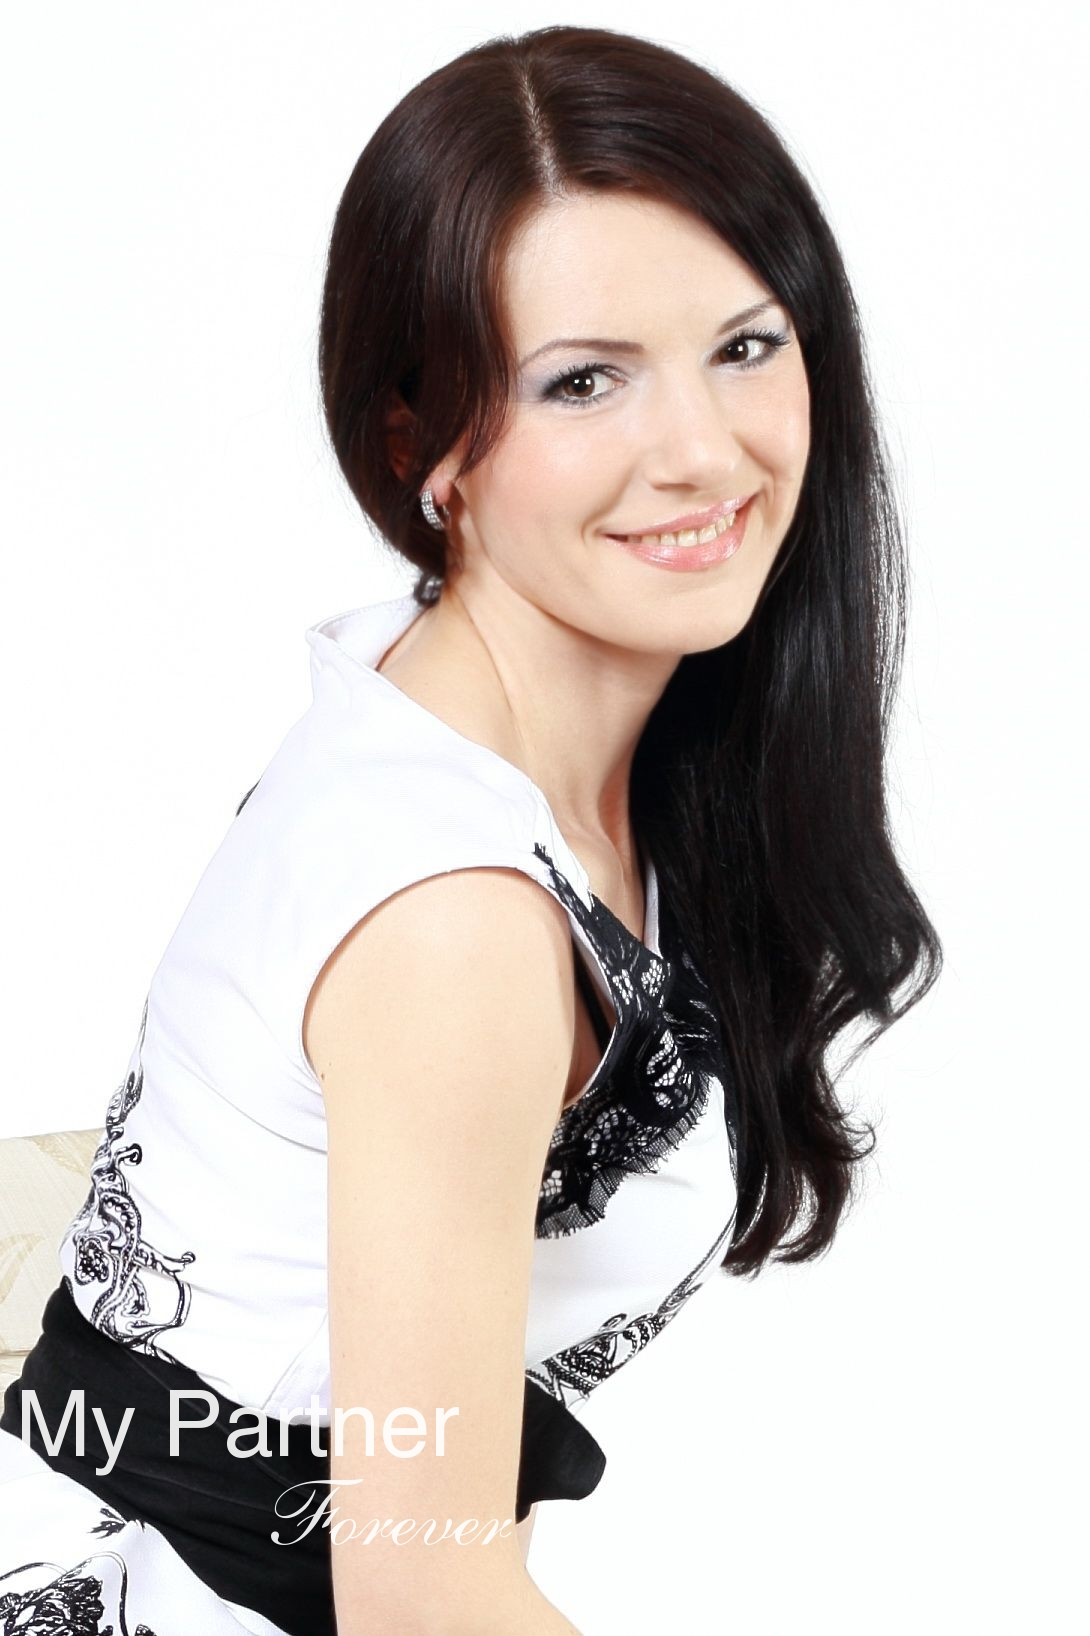 Marriage Agency to Meet Olga from Grodno, Belarus